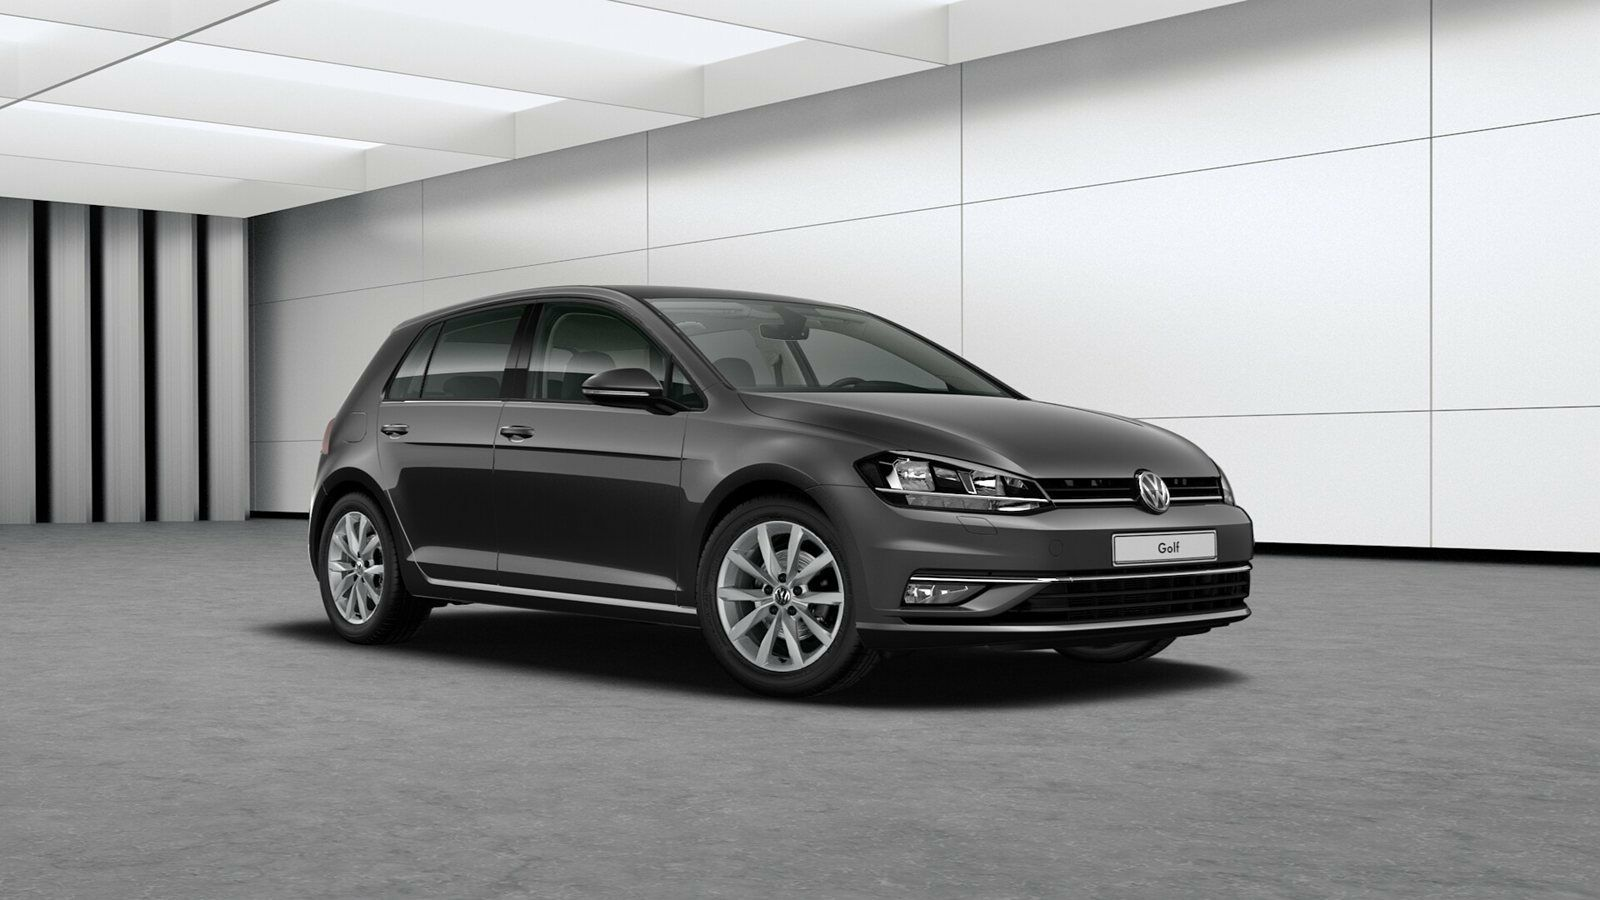 brugt vw golf vii 1 5 tsi 150 highline dsg til salg bilbasen. Black Bedroom Furniture Sets. Home Design Ideas